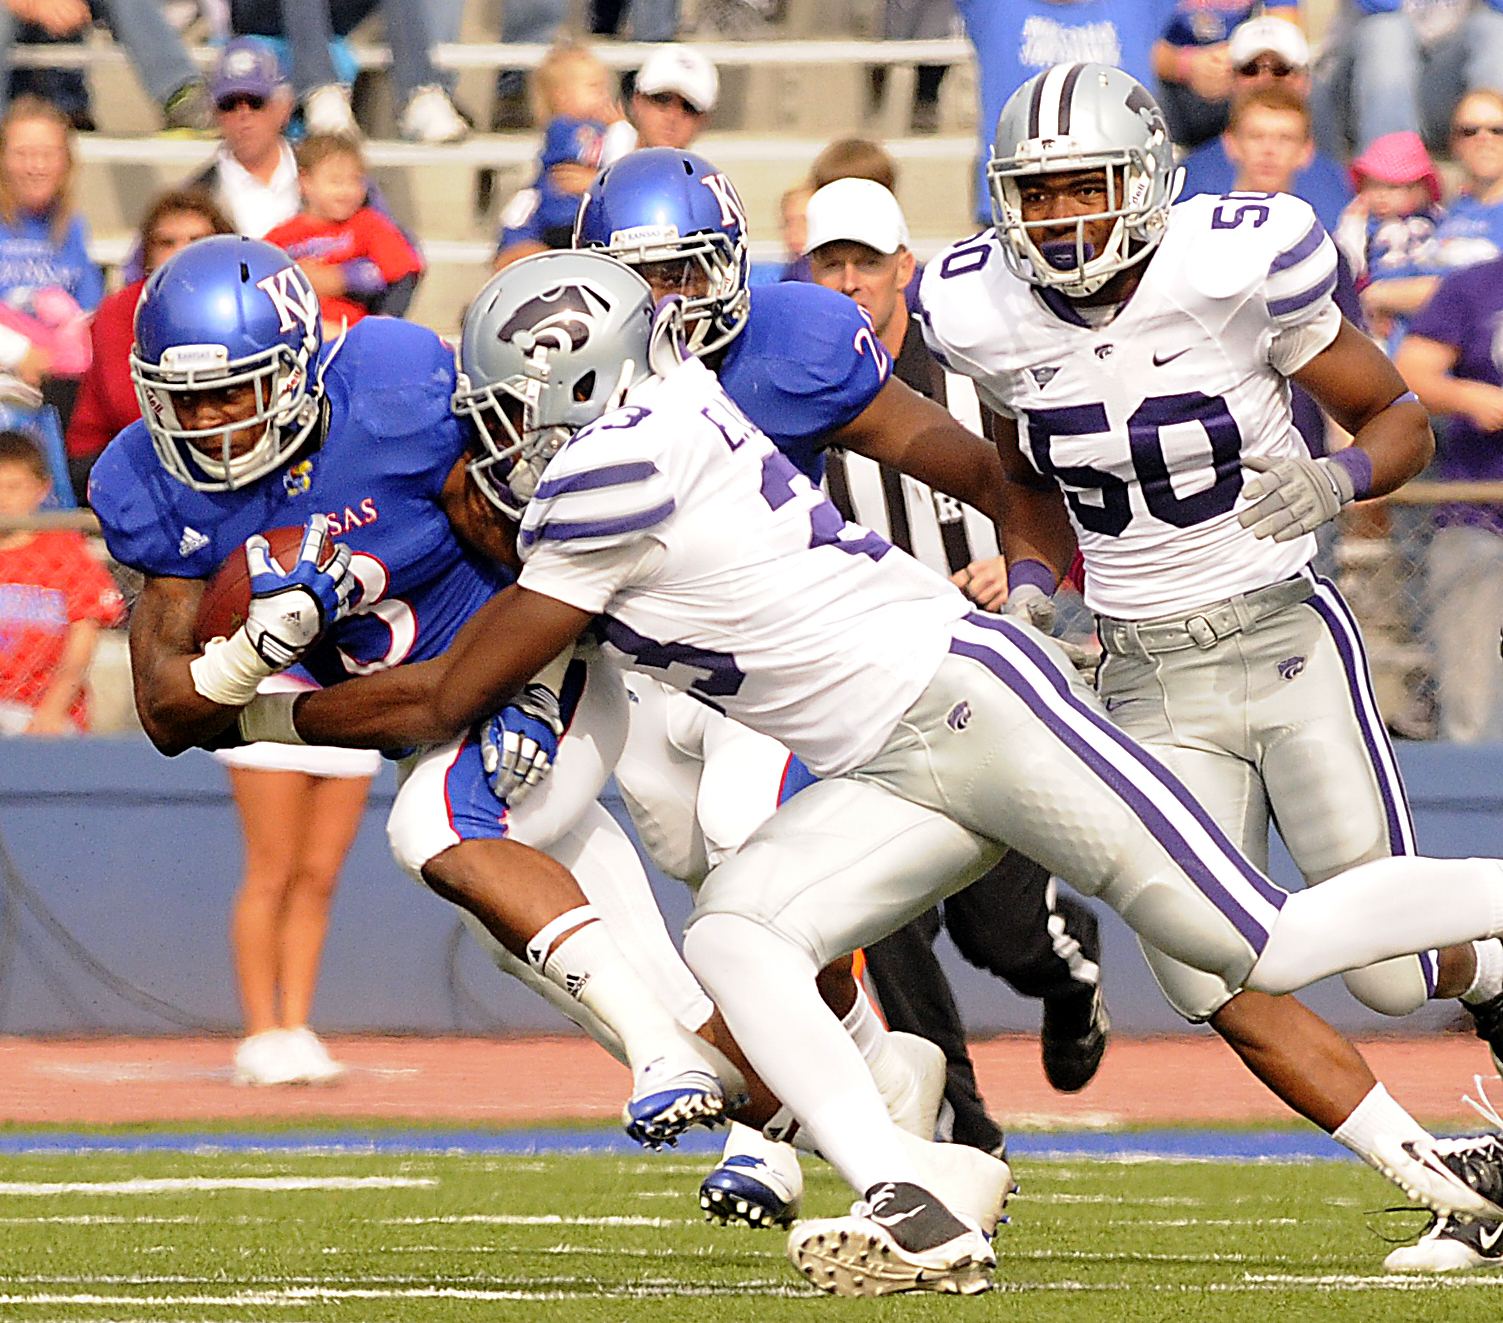 KU football RB Darrian Miller's long and winding road as a ...